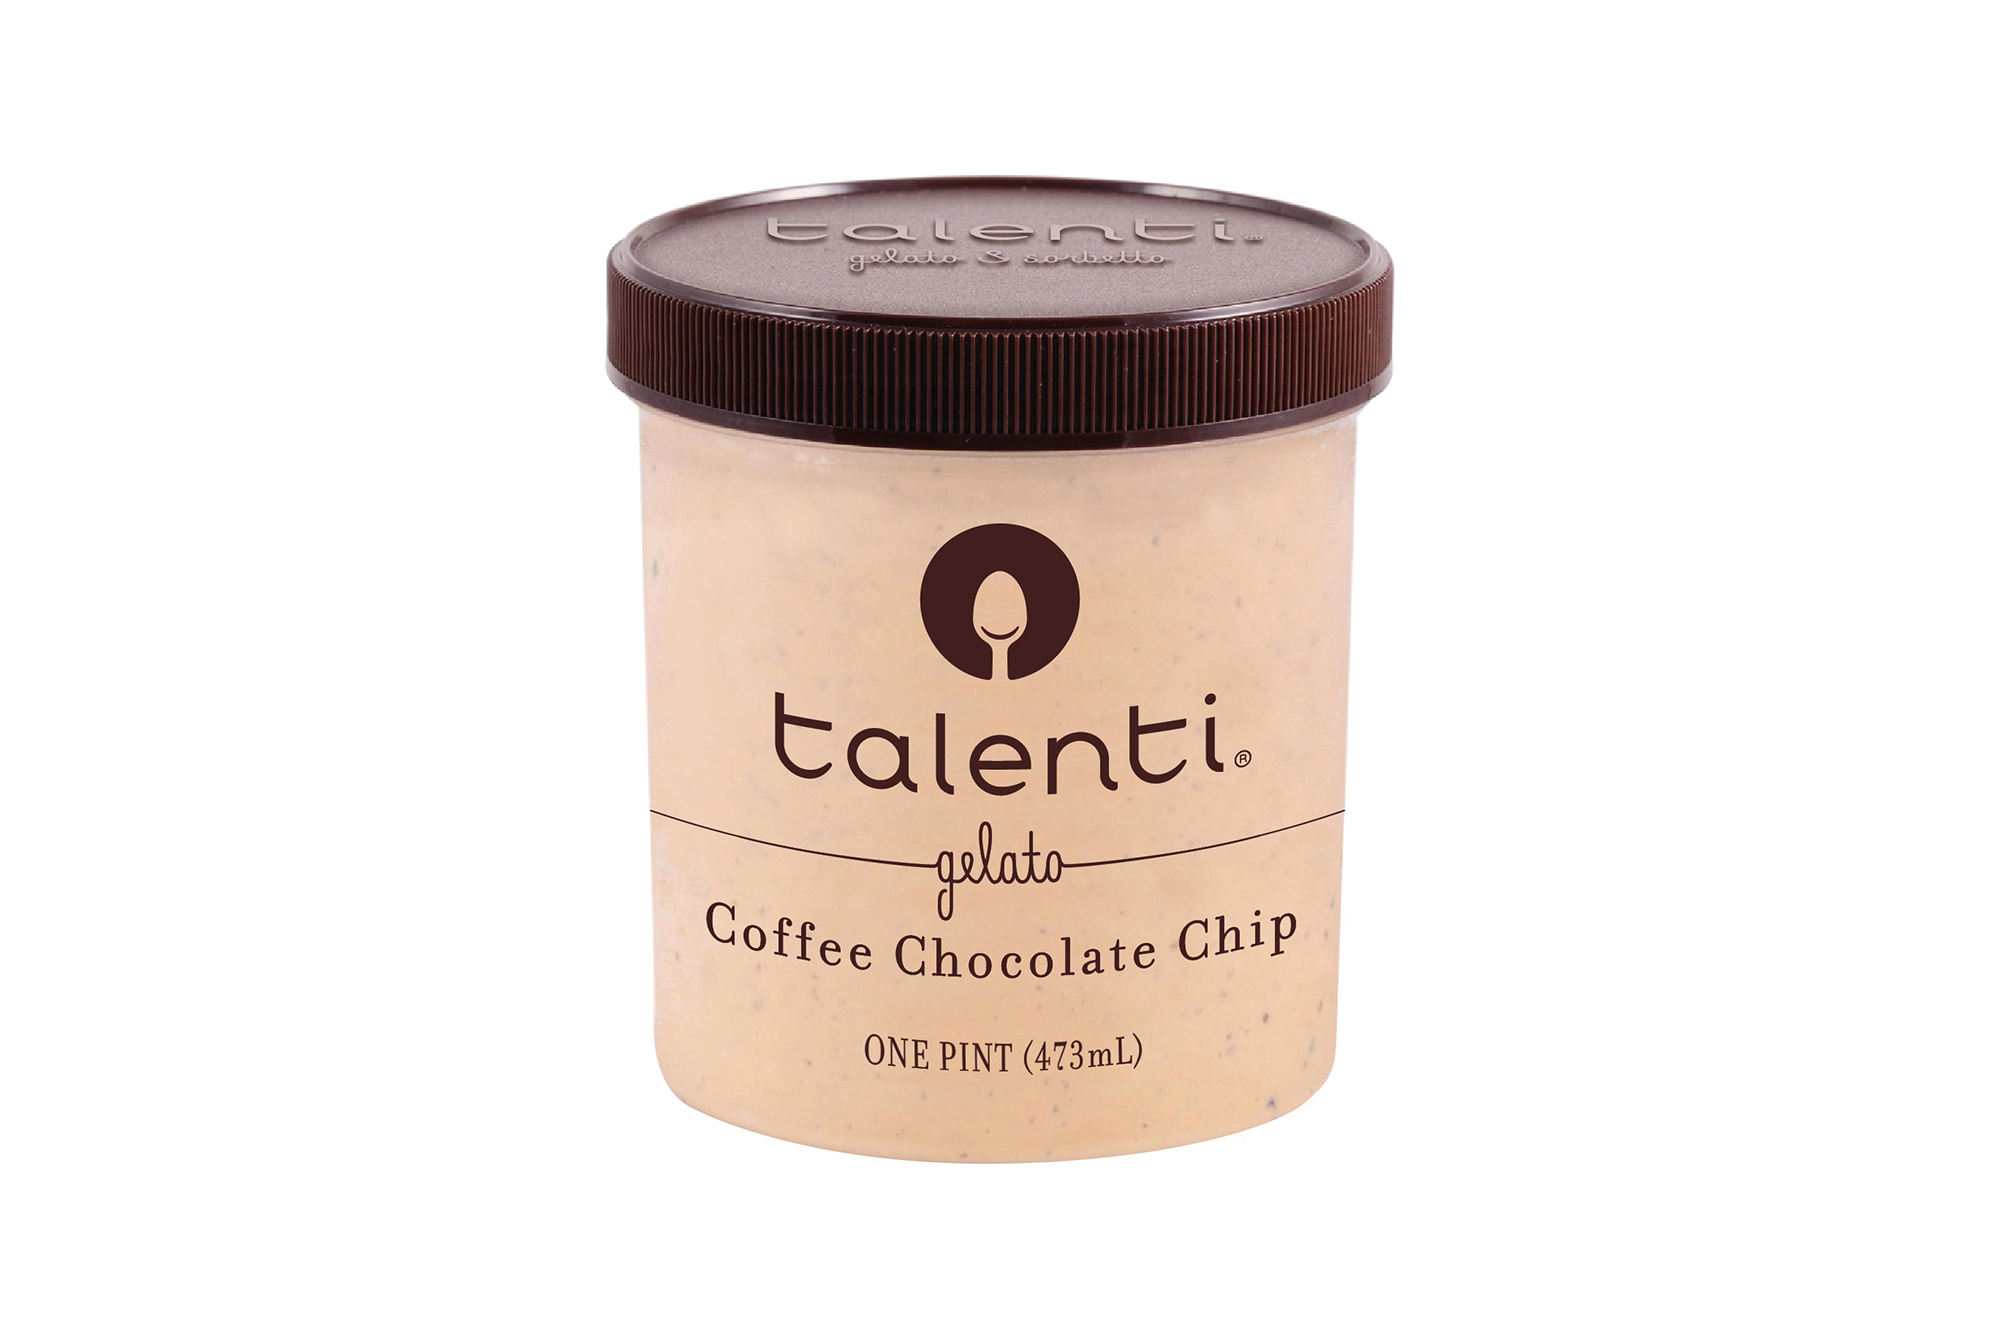 F:PHOTOReady RoomActionsInsert Request48077#talenticoffee chocolate chip pint.png